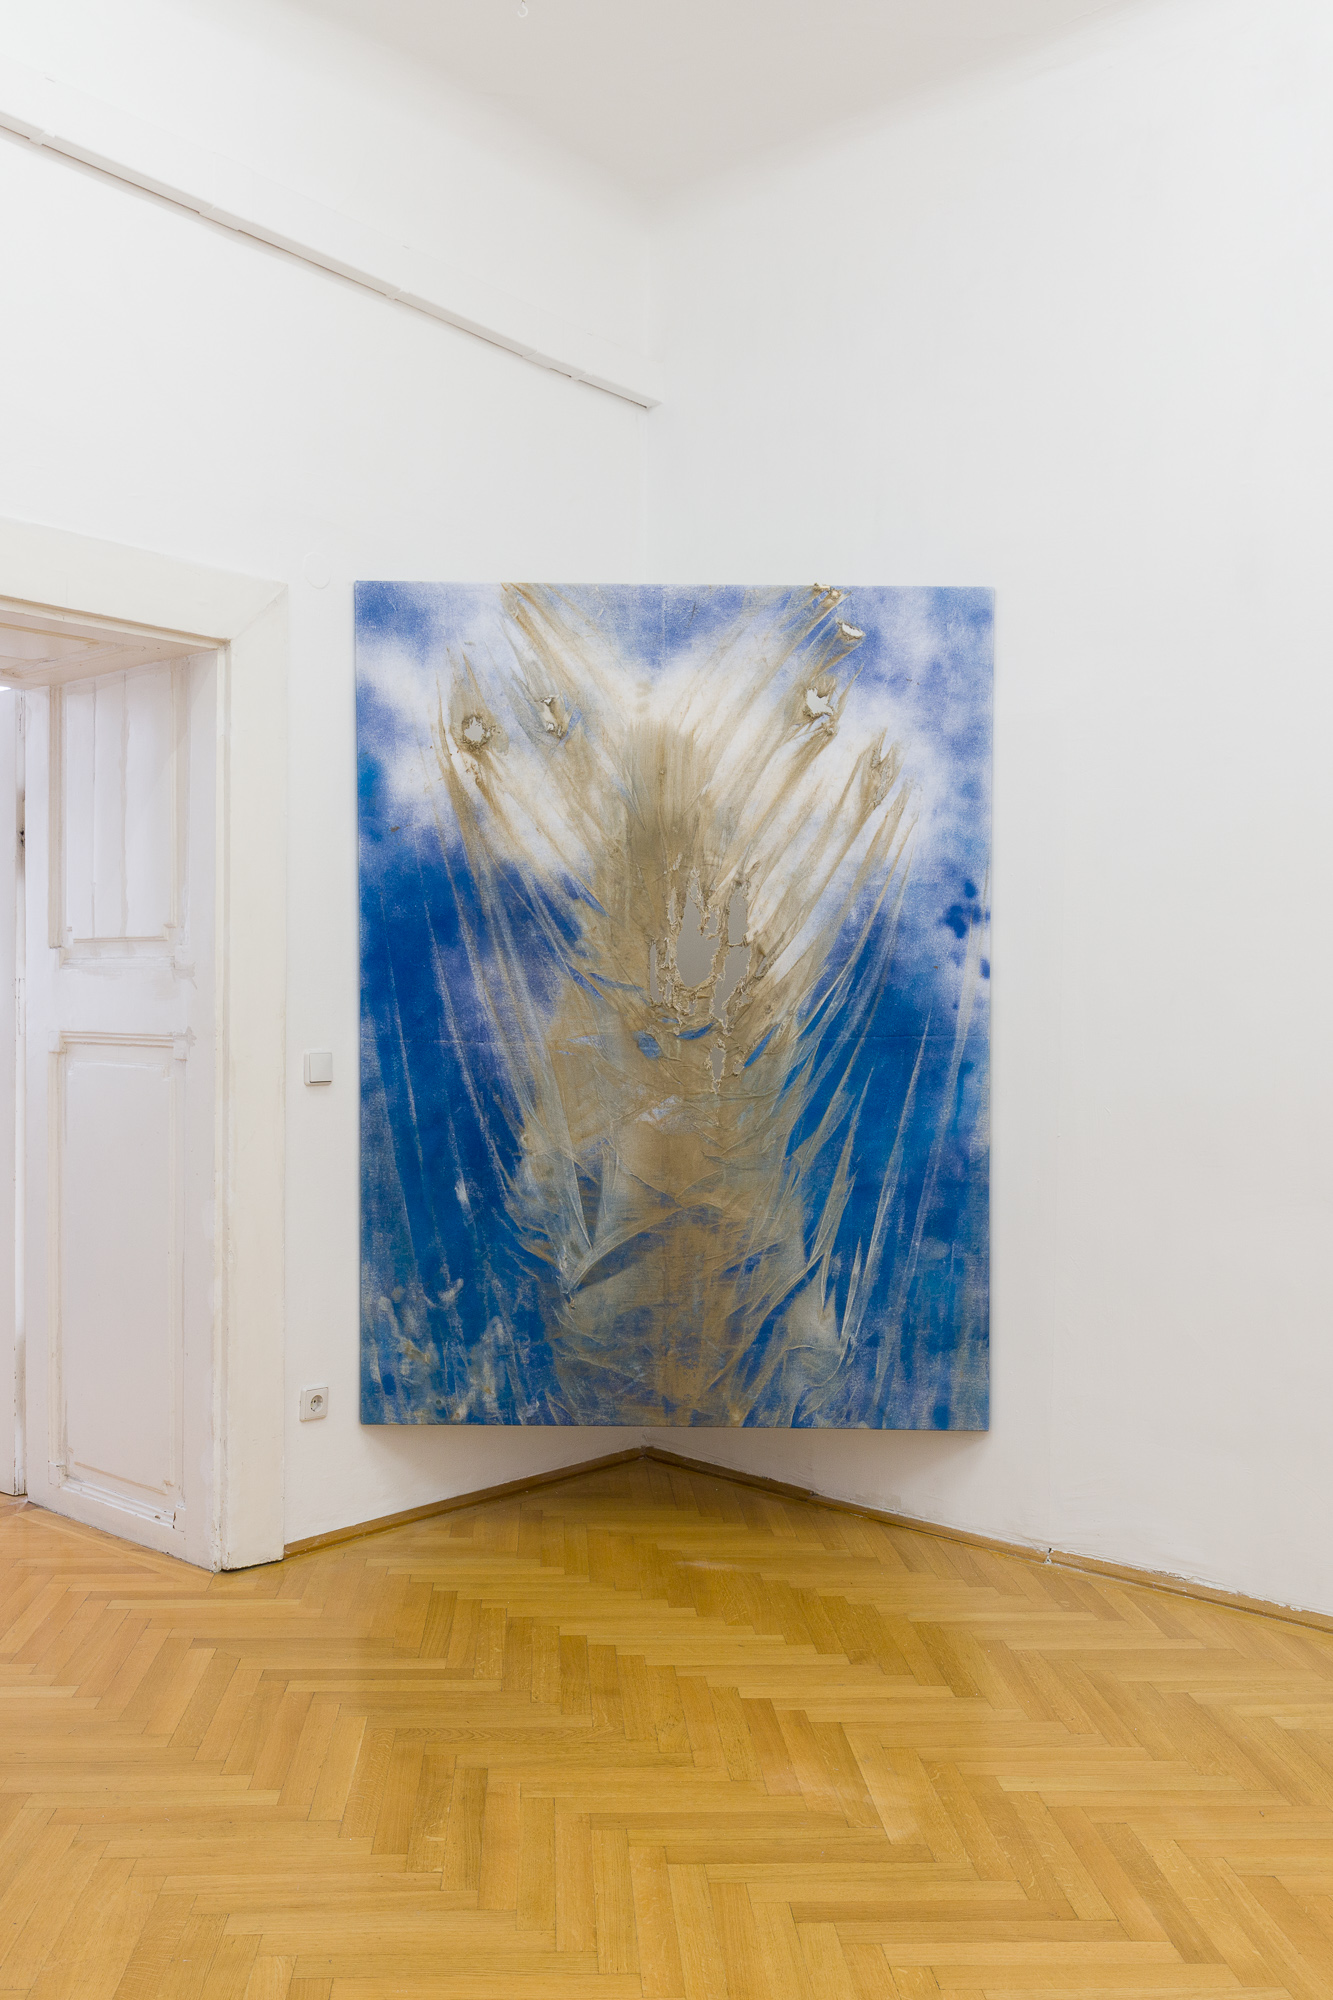 2018_09_15_Andrew Birk at Sort Vienna_by kunst-dokumentation.com_022_web.jpg